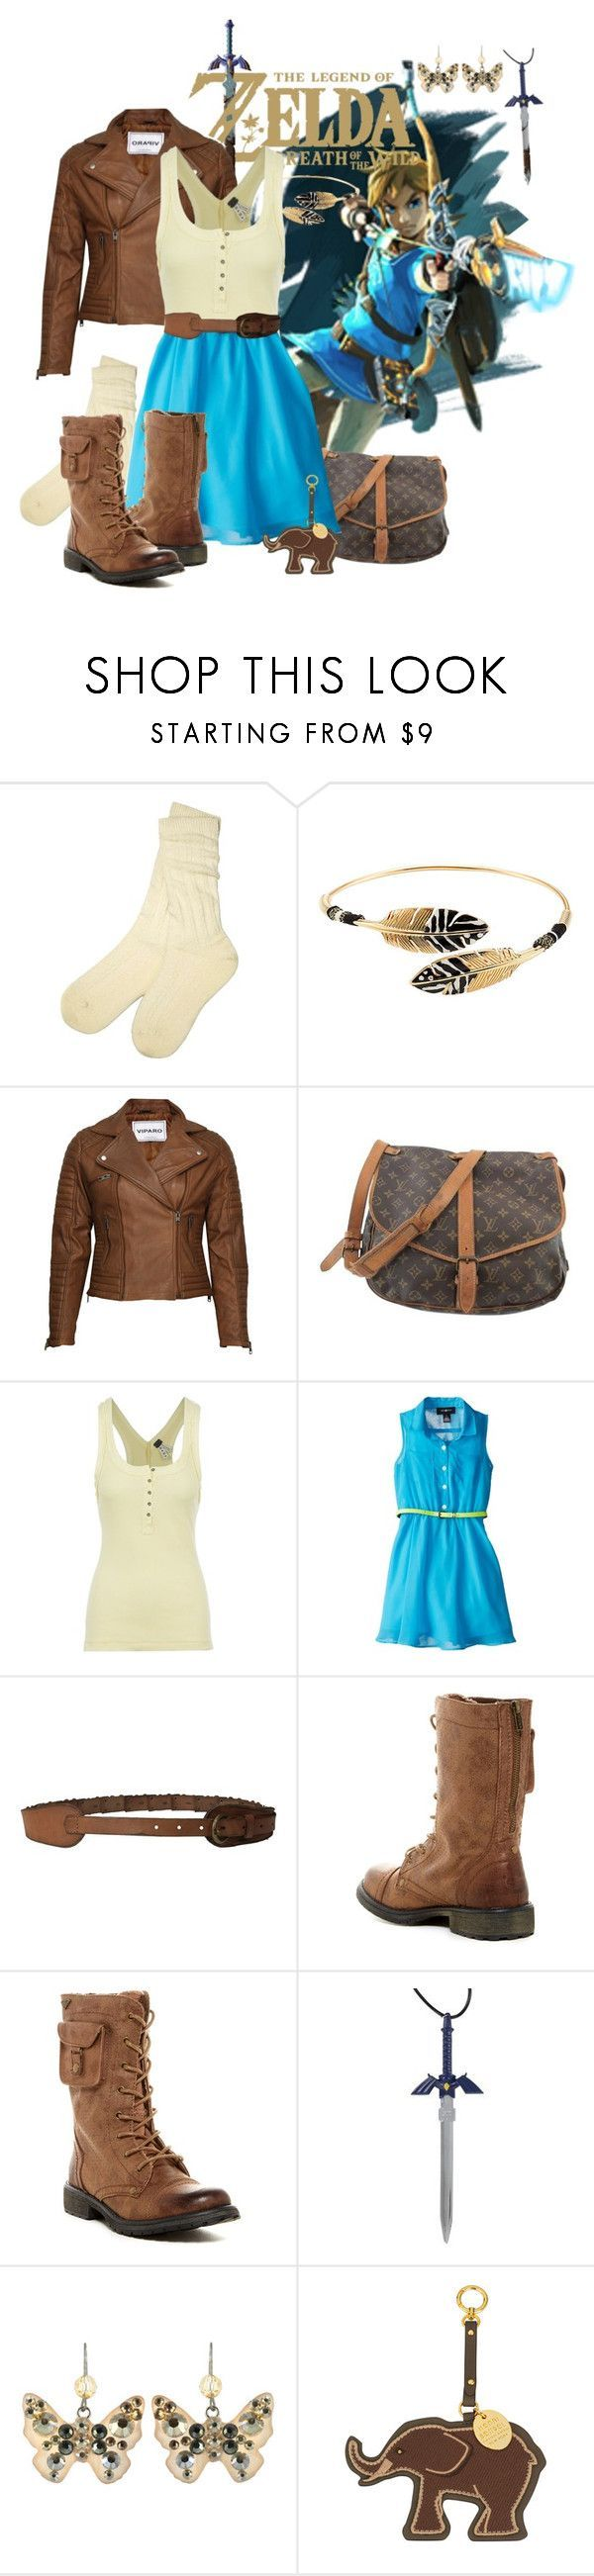 """""""Legend of Zelda Breath of the Wild - Link"""" by marielw97 ❤ liked on Polyvore featuring UGG, Gas Bijoux, VIPARO, Louis Vuitton, Free People, Amy Byer, Bed Stü, Nordstrom Rack, Roxy and Tarina Tarantino"""